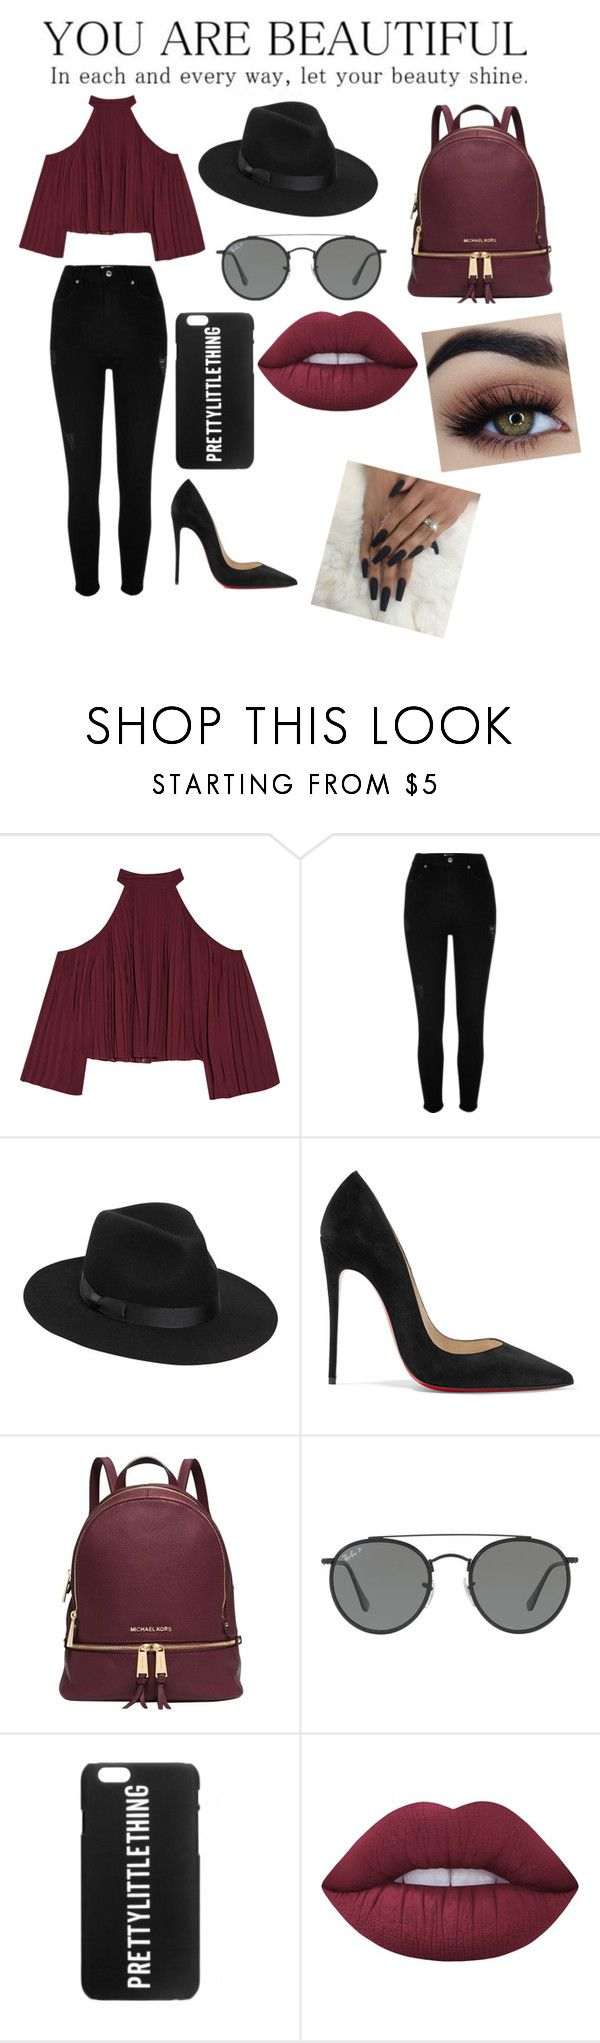 ♥️ by iamthequeenofwonderland on Polyvore featuring moda, W118 by Walter Baker, River Island, Christian Louboutin, Michael Kors, Lack of Color, Ray-Ban and Lime Crime